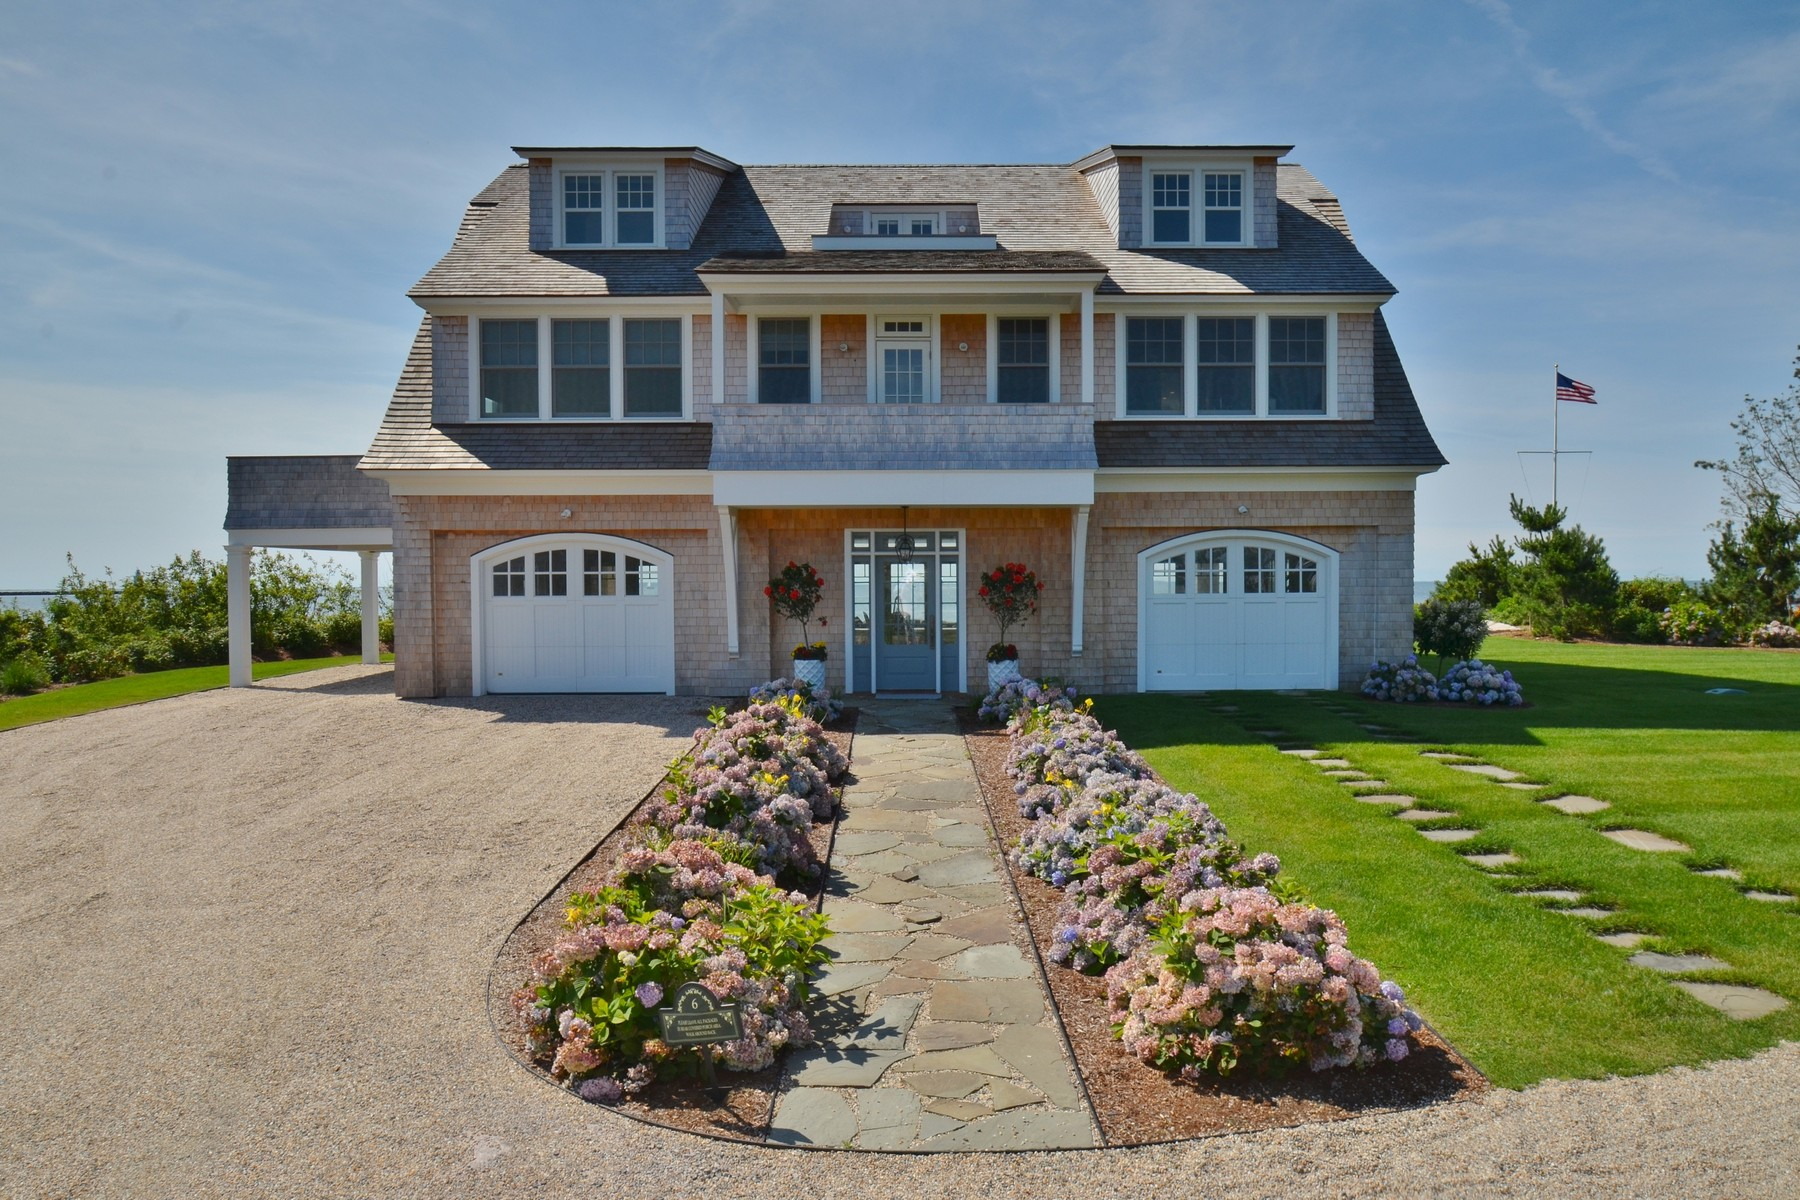 Casa Unifamiliar por un Venta en Waterfront Paradise 6 Mohegan Ave Old Saybrook, Connecticut 06475 Estados Unidos